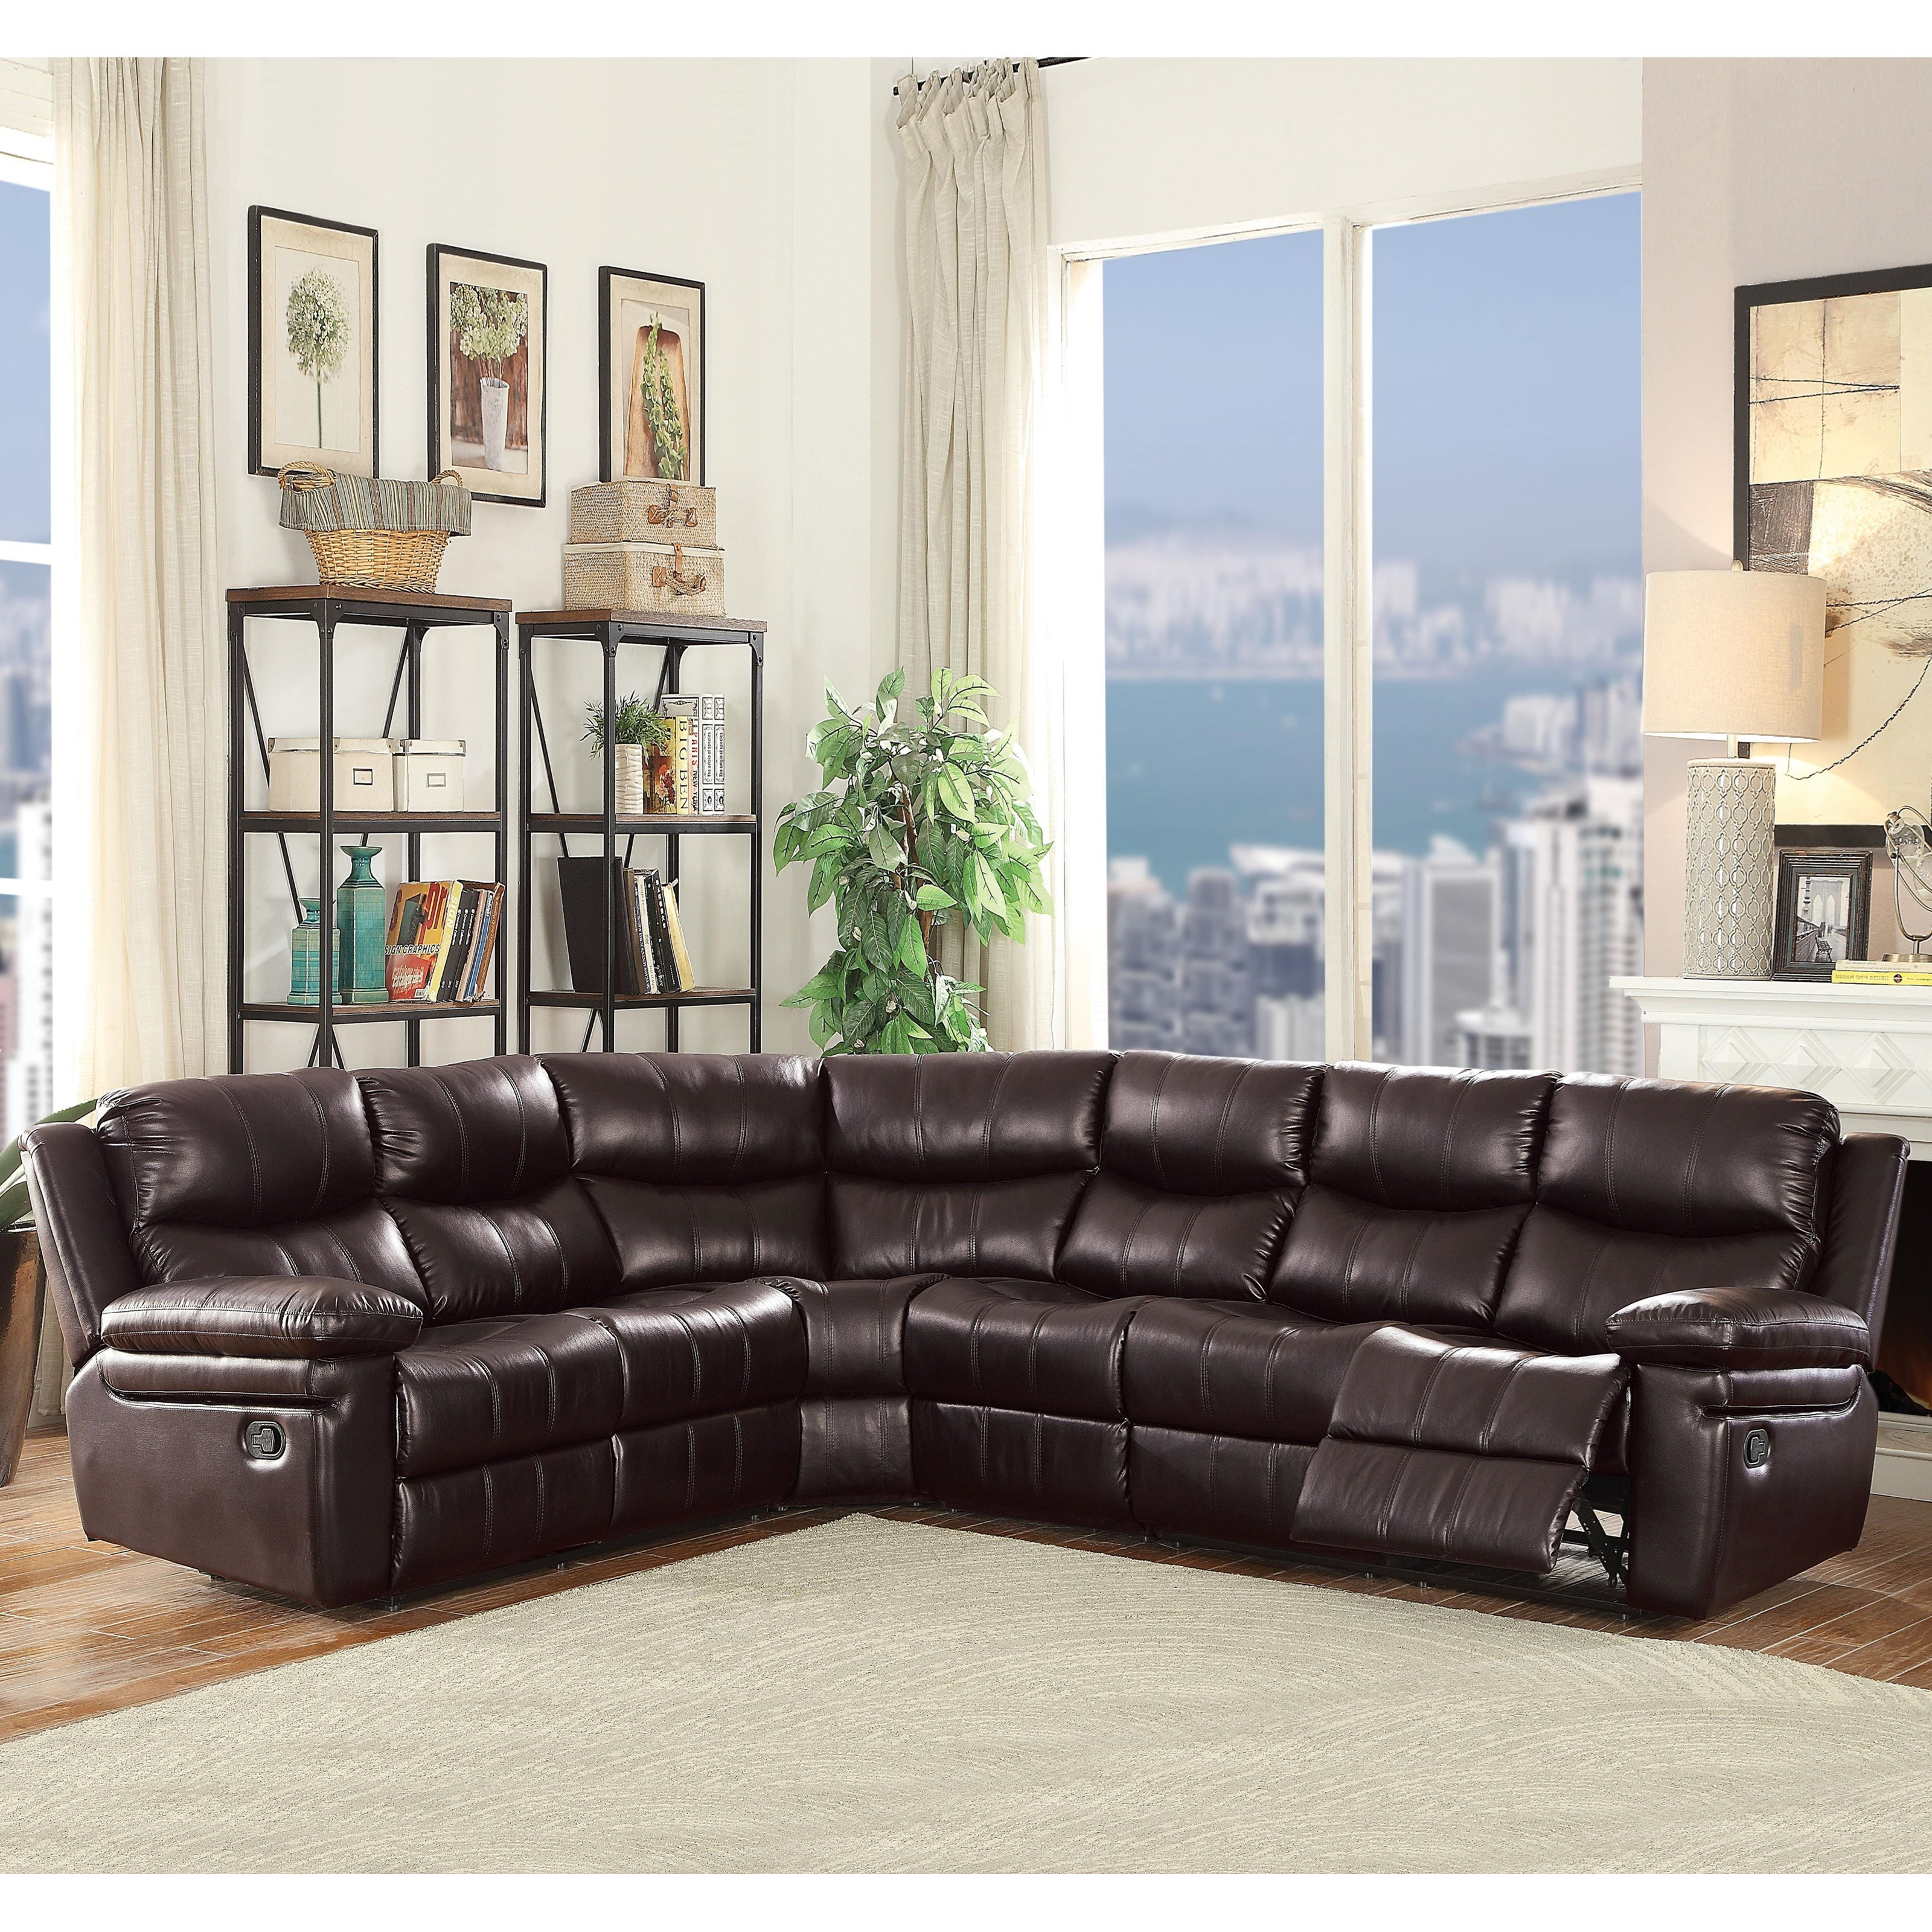 Lavinia Reclining Sectional by Acme Furniture at Value City Furniture